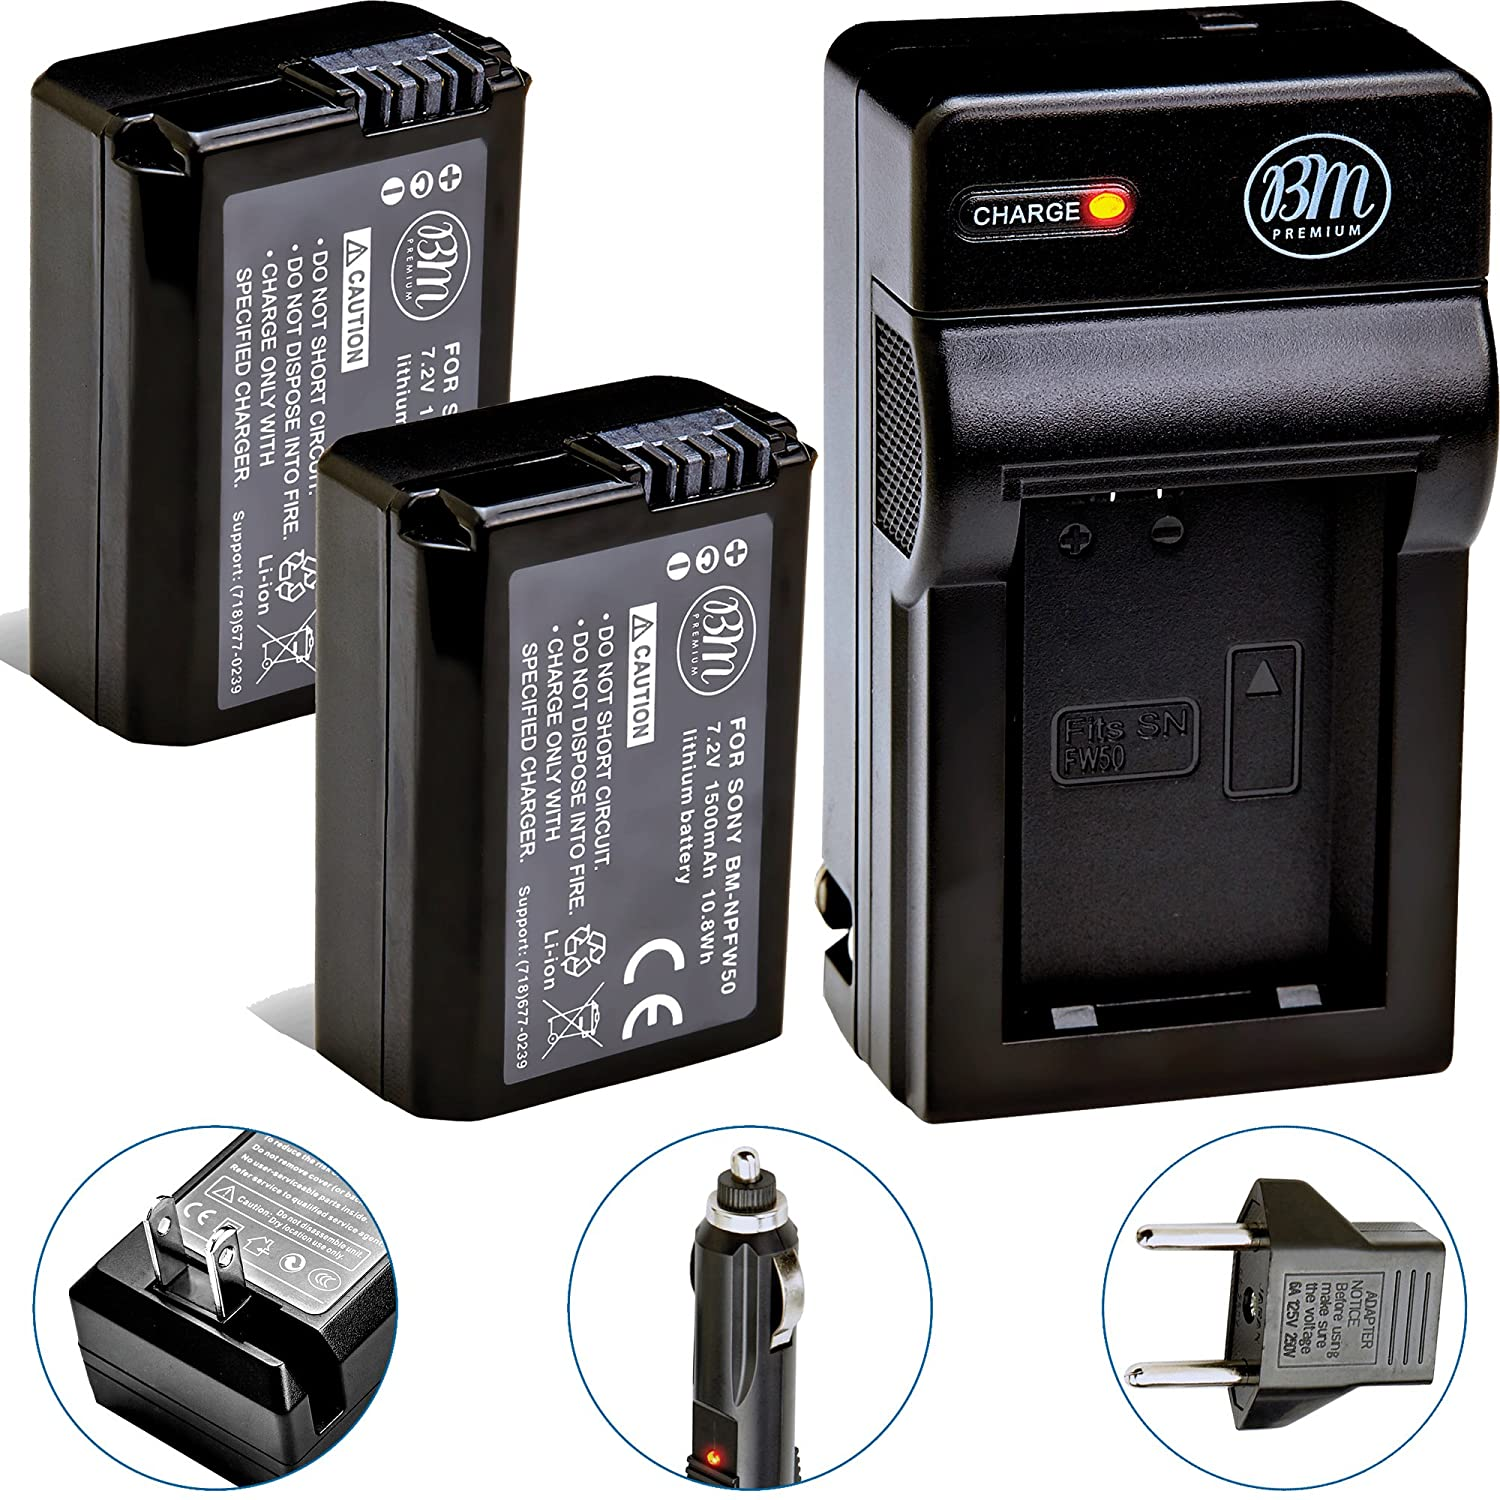 BM Premium 2-Pack Of NP-FW50 Batteries & Charger for Sony DSC-RX10/B, DSC-RX10 II, DSC-RX10 III, Alpha A6300, Alpha 7, A7R, A7R II, A7S, A7S II, A7II, A3000, A5000, A5100, A6000, NEX-3, NEX-C3, NEX-F3K, NEX5, NEX5K, NEX5N, NEX5T, NEX6, NEX7, SLT-A33, SLT-A